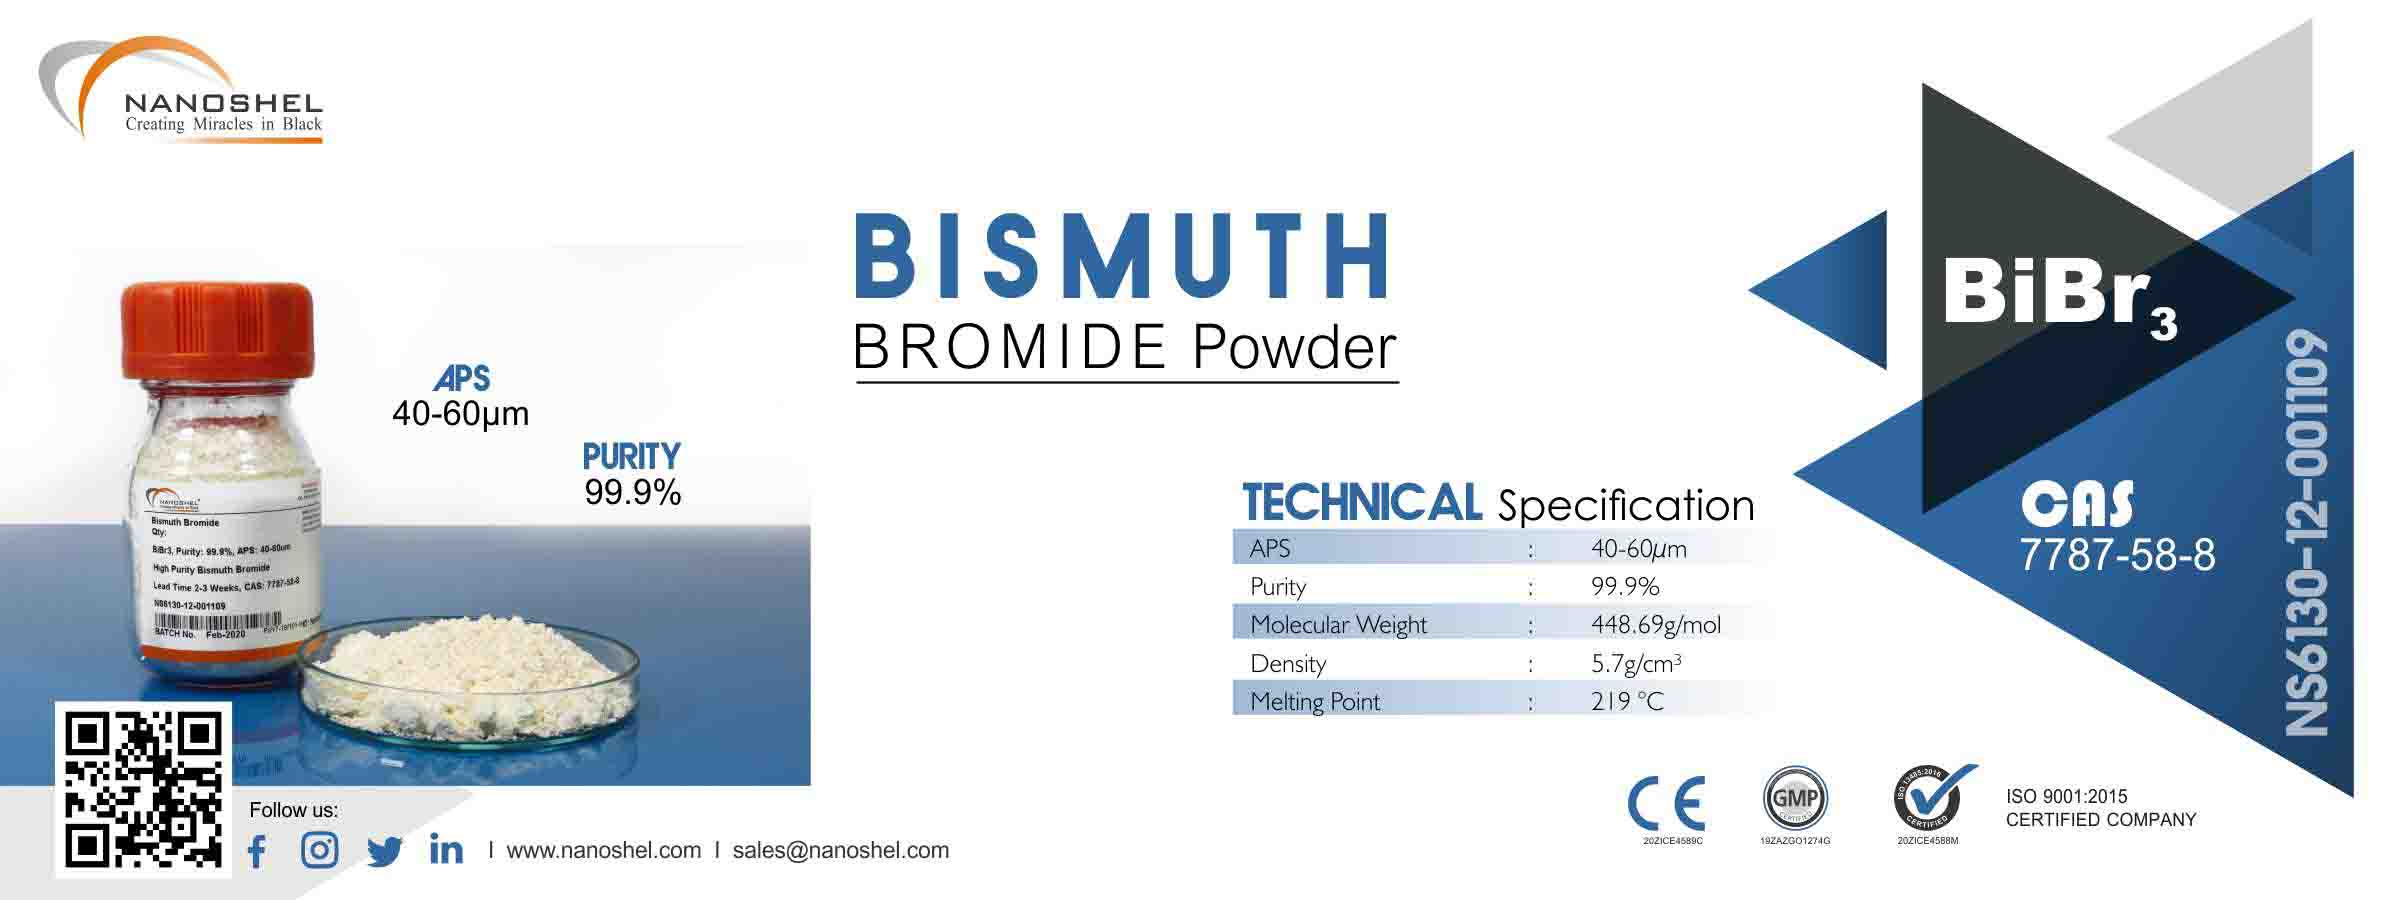 Bismuth Bromide Powder